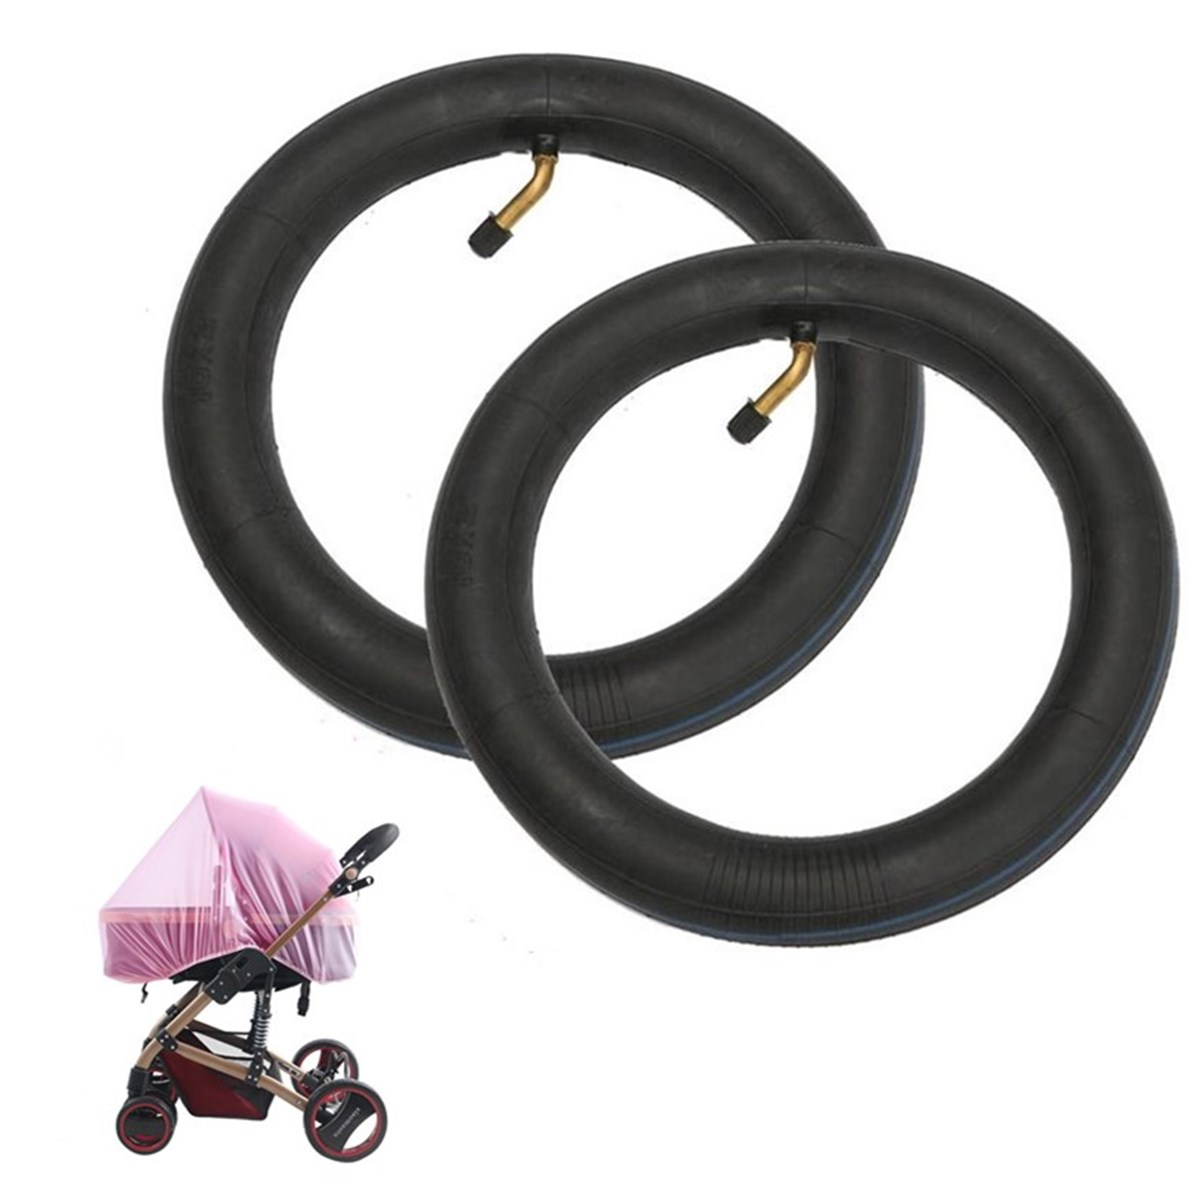 10x2'' Thickened Butyl Rubber Pneumatic Inner Tube For Scooter Pram Universal Kids Bike Trike Tricycle Rear Wheel Pushchair Tyre